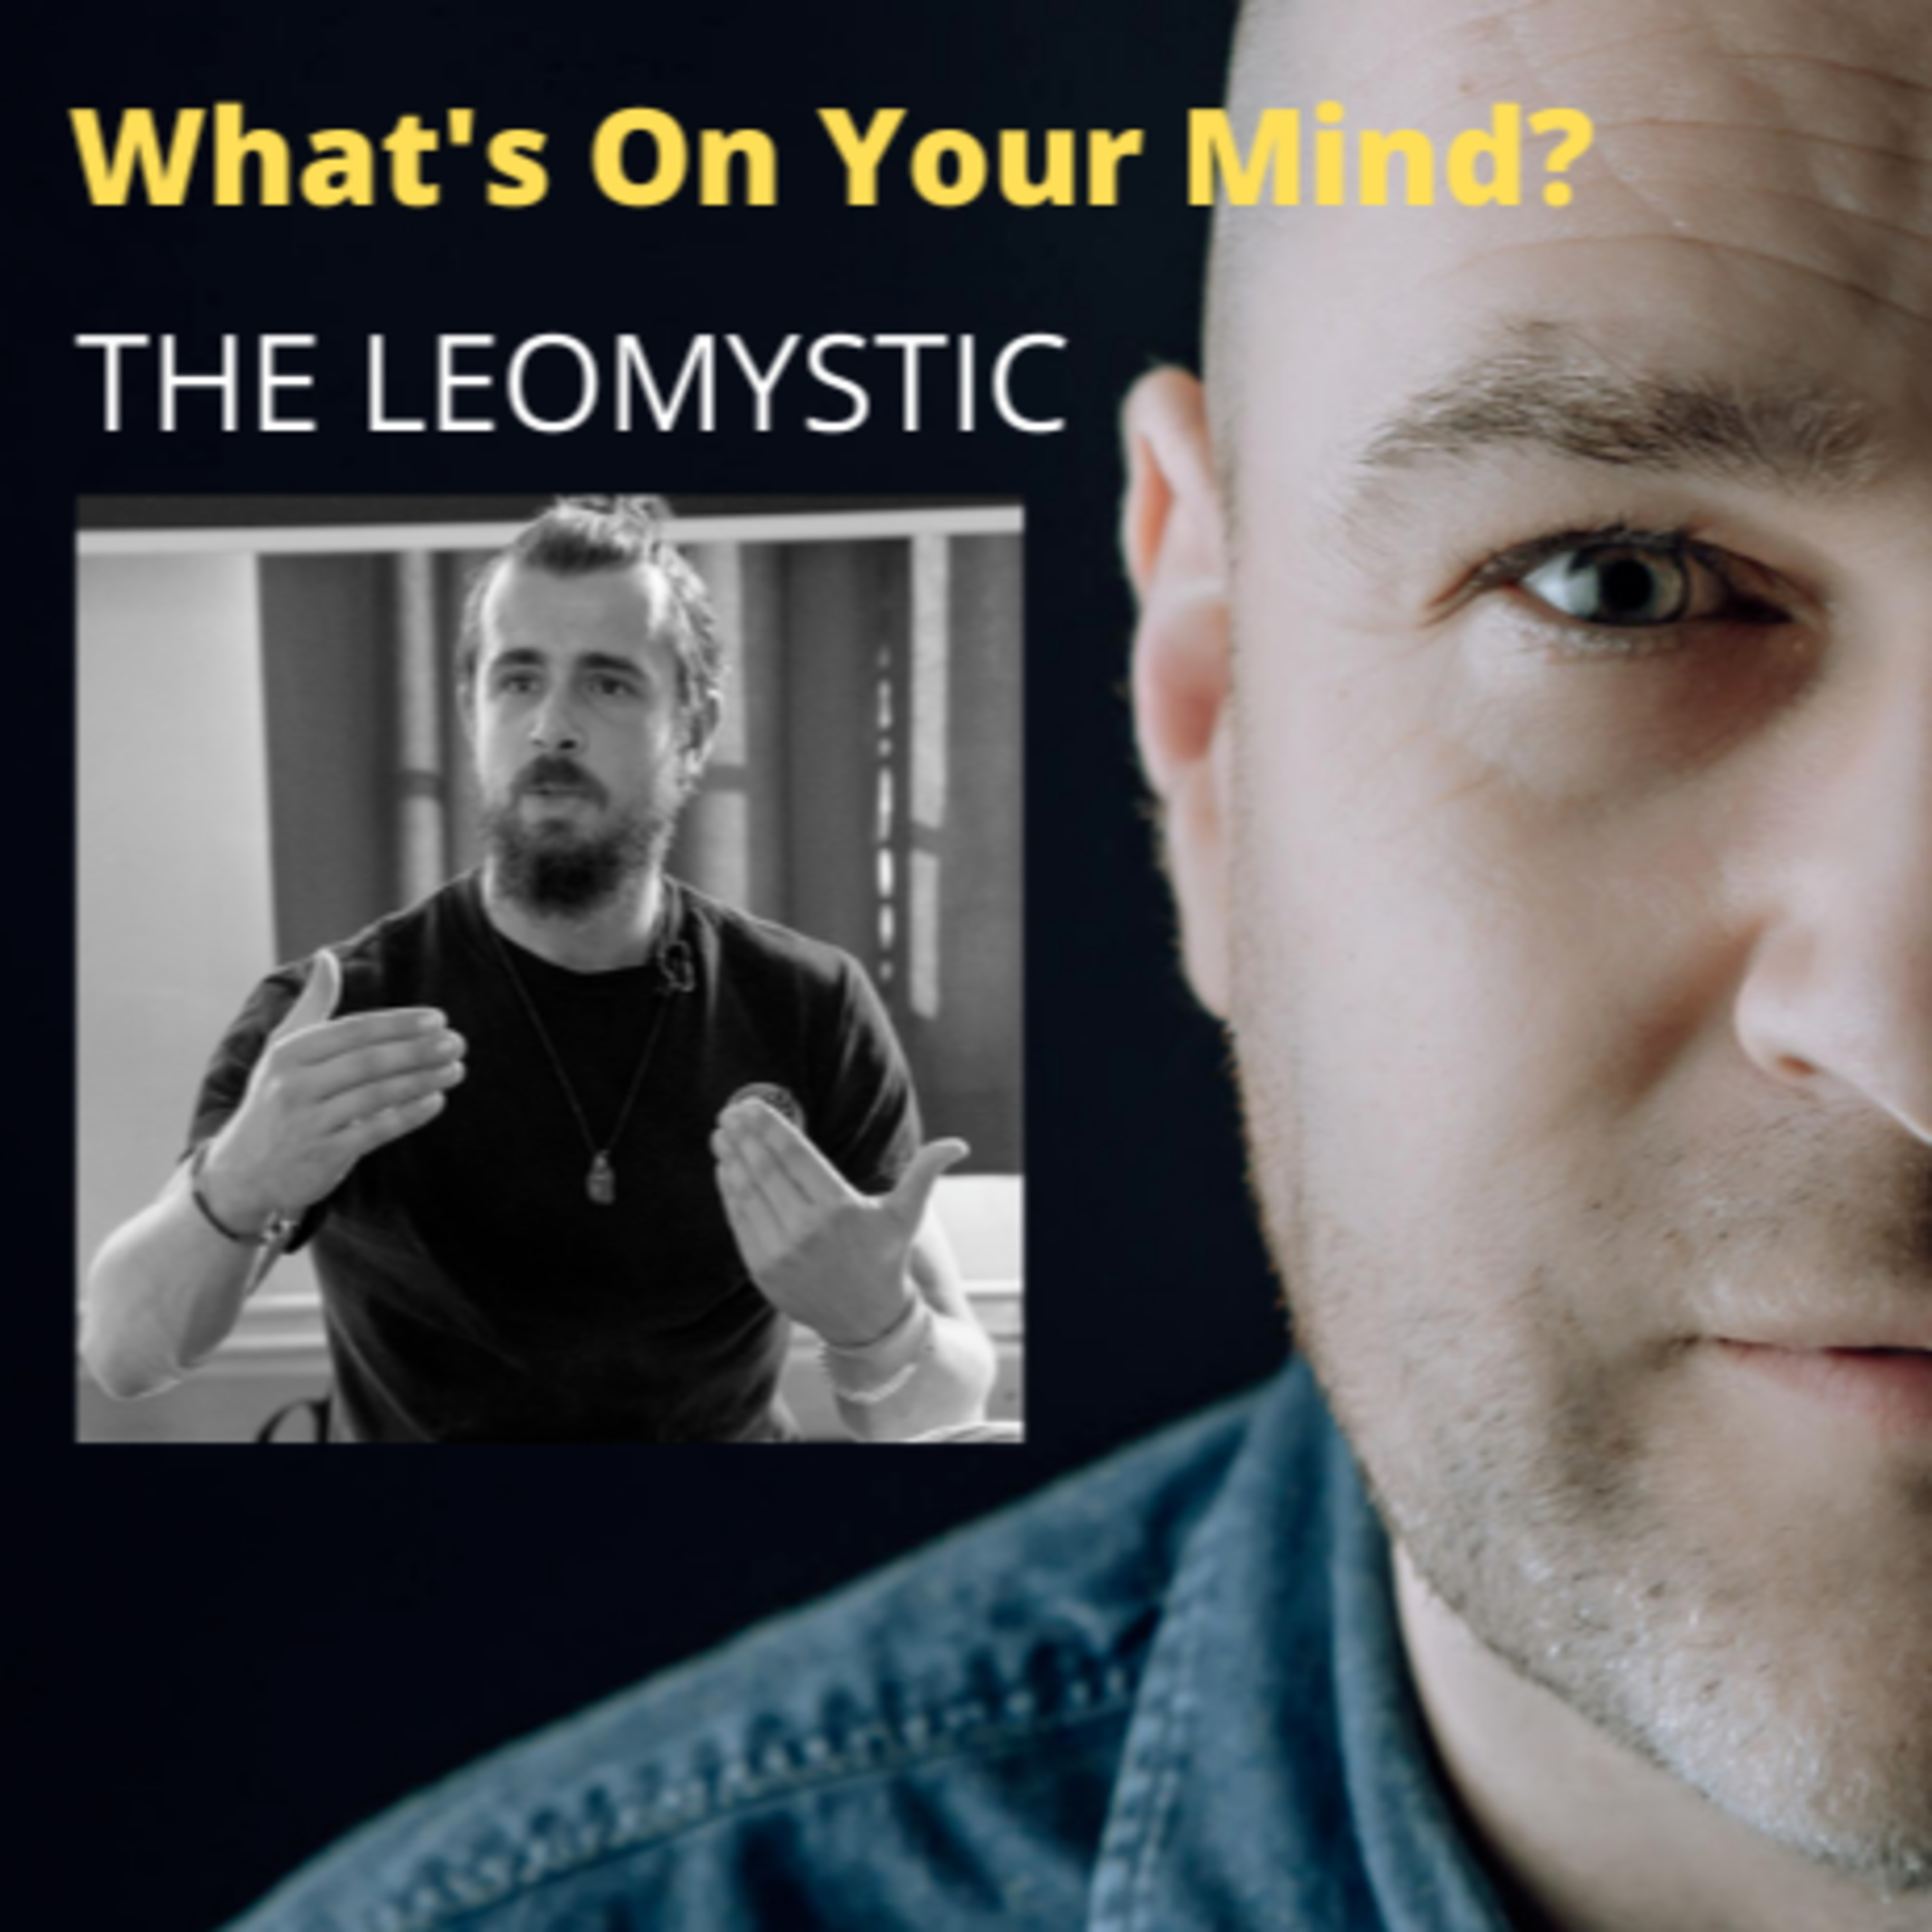 WOYM 66: Michael Van den Bossche Aka Leomystic About His Path To Becoming An Astrologer After Studying Translater